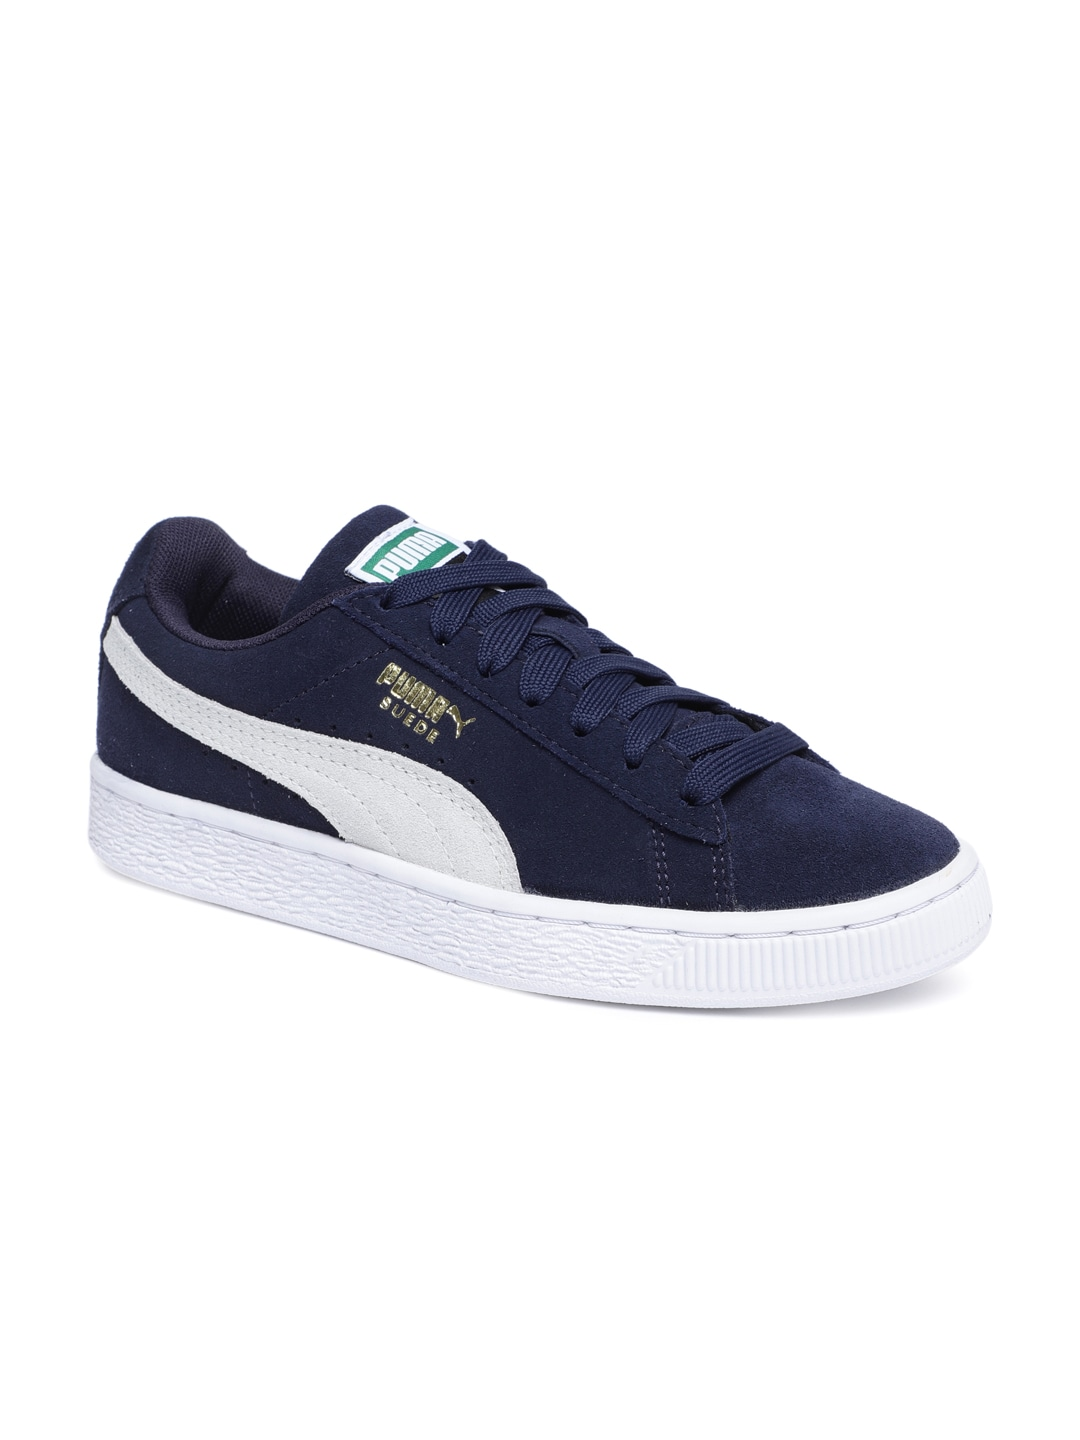 d01829bab756 Puma Suede Footwear Men Casual Shoes - Buy Puma Suede Footwear Men Casual  Shoes online in India